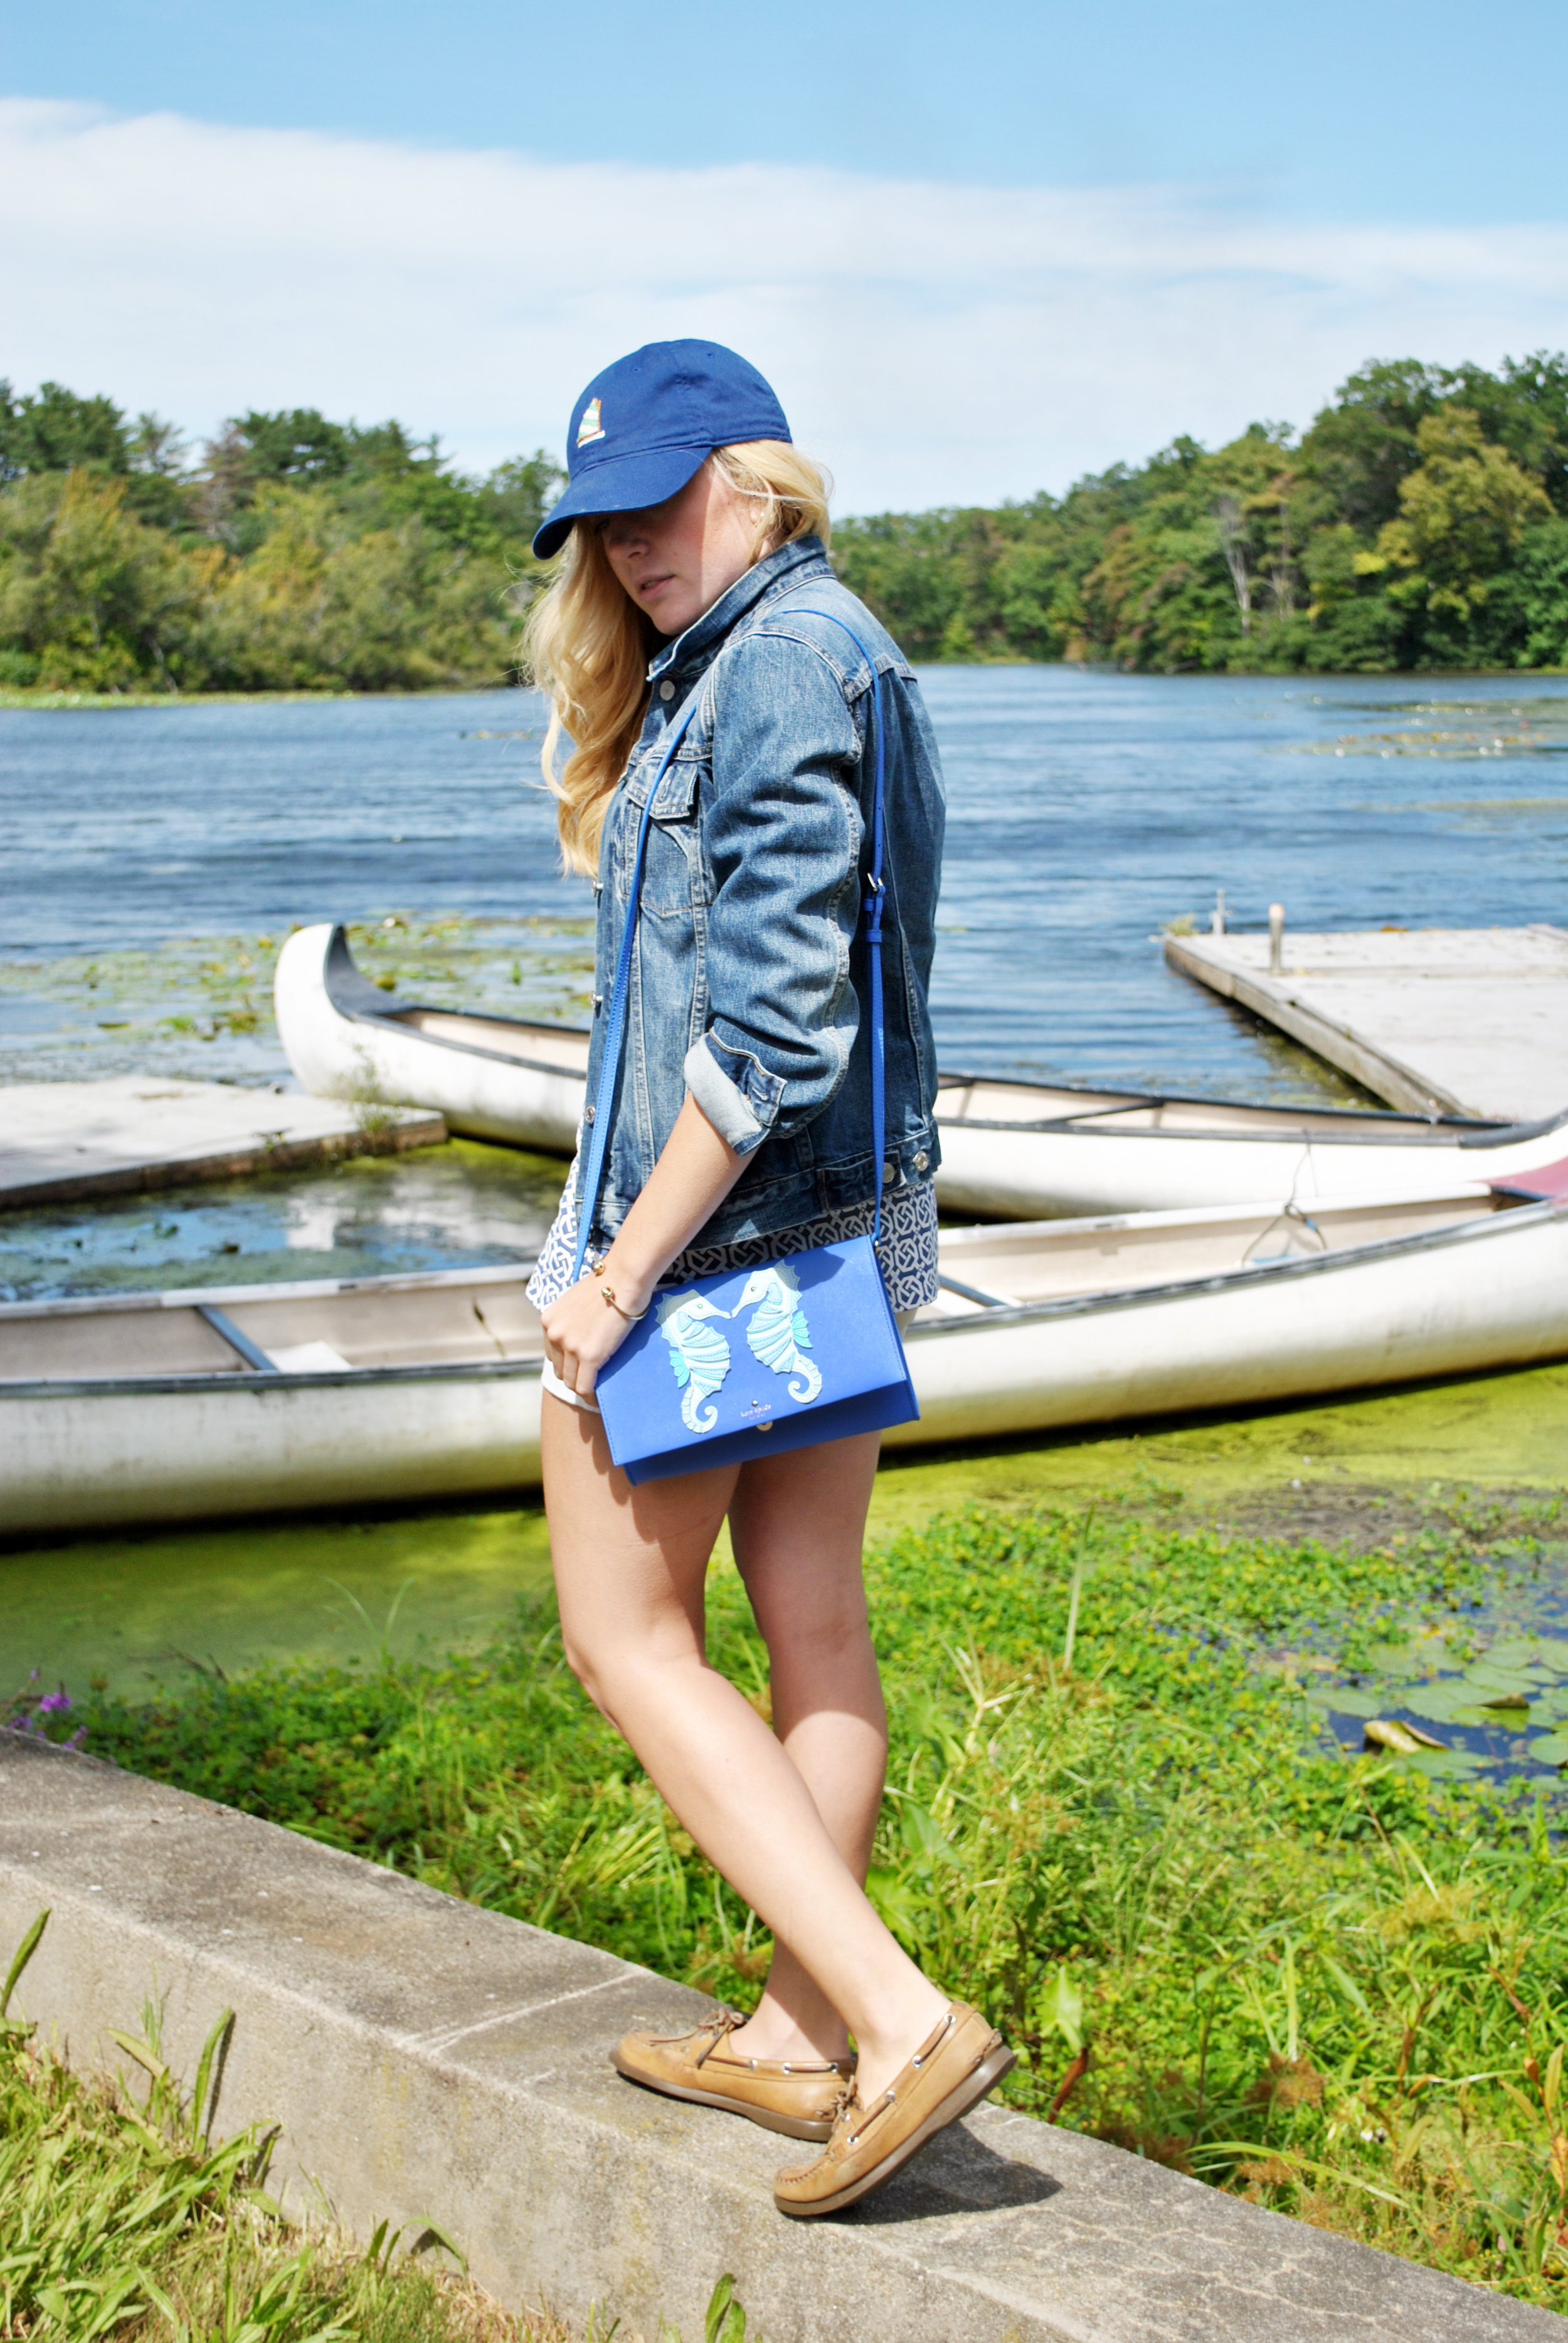 thoughtfulwish | smathers & branson // baseball cap // sailing // sailboat // fblog // fashion blogger // boston // new england fashion // j.mclaughlin // kate spade // meredith wish // boston